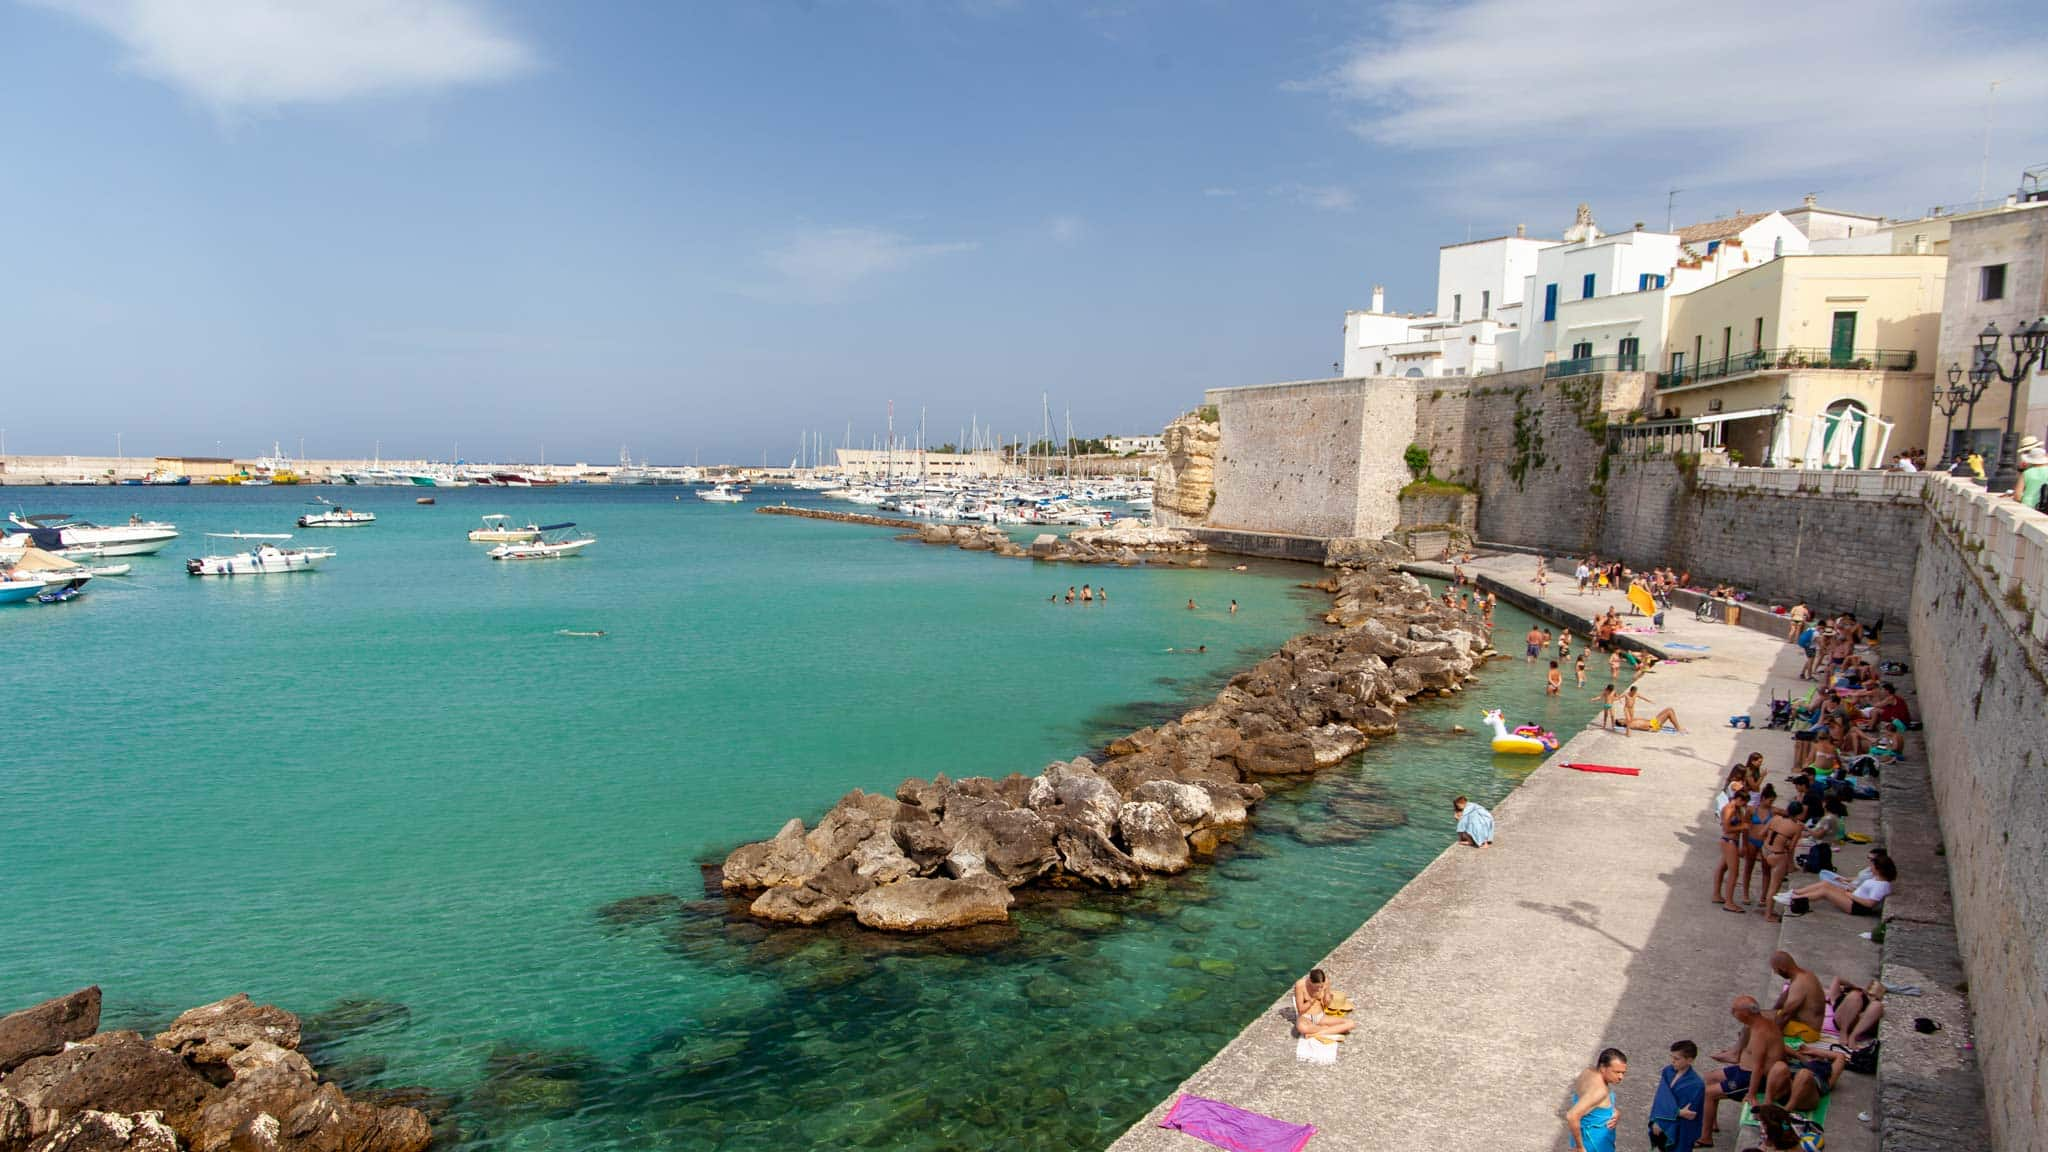 The walled city of Otranto in Puglia with the coast outside the walls